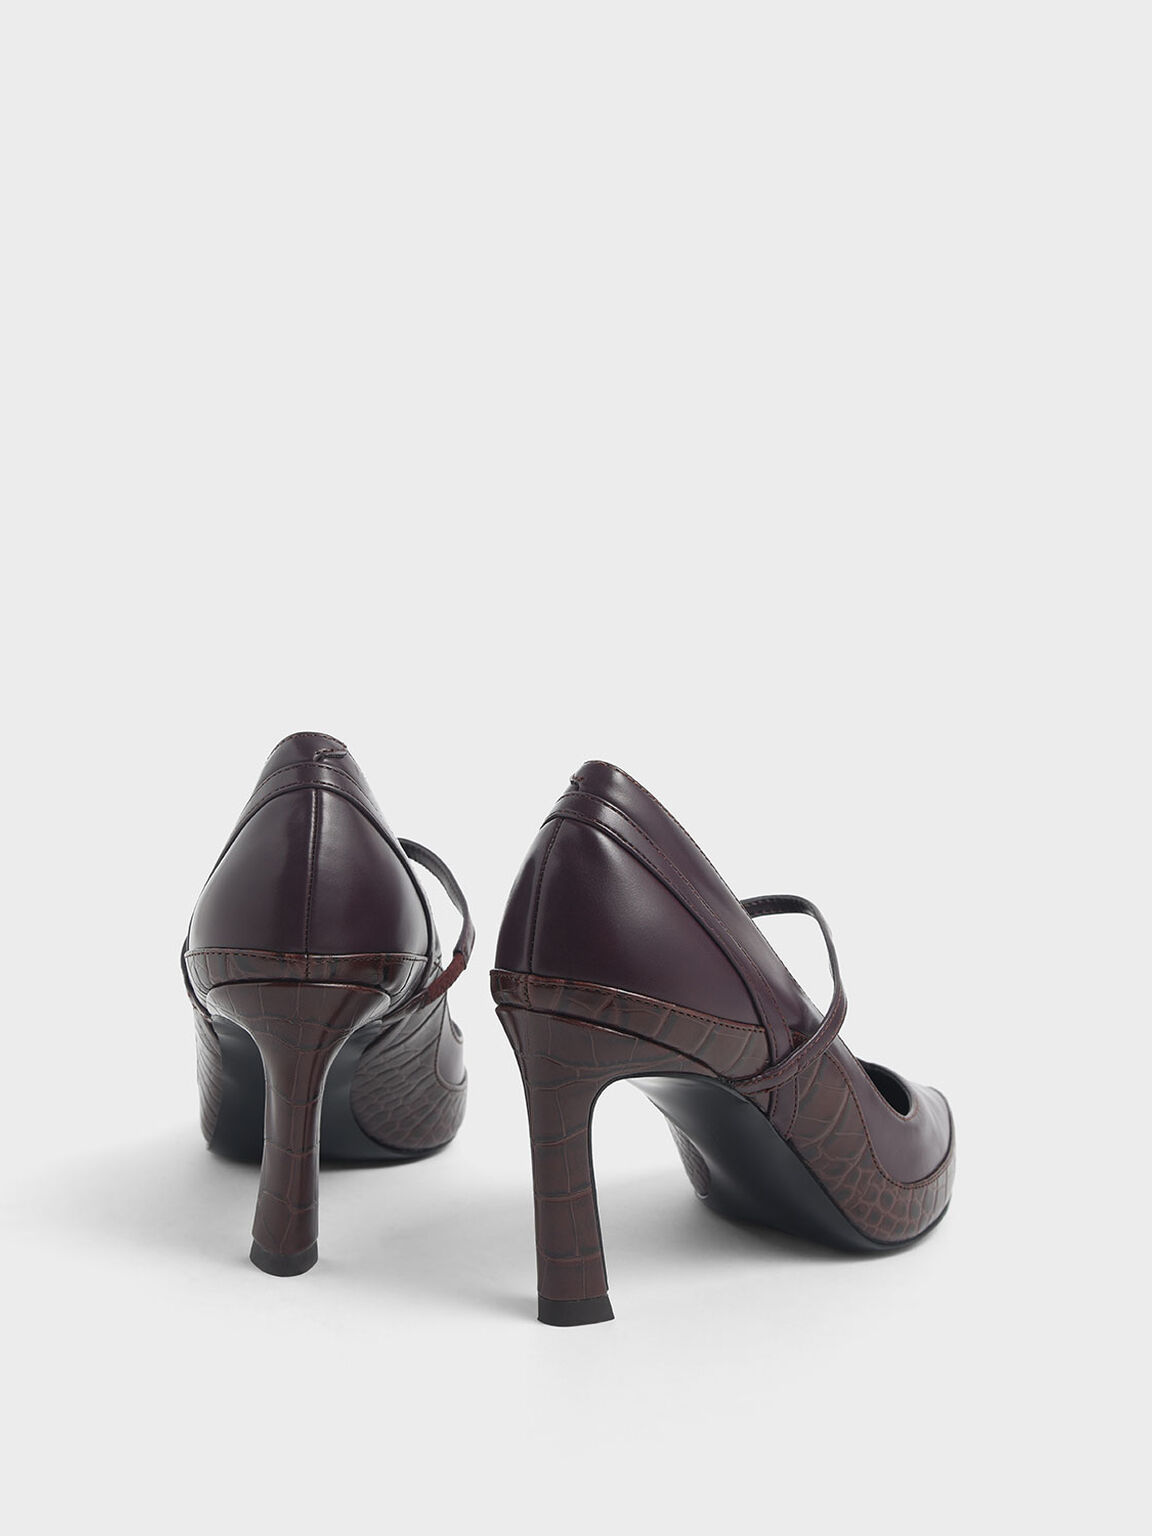 Croc-Effect Pointed Toe Mary Jane Sculptural Heels, Burgundy, hi-res